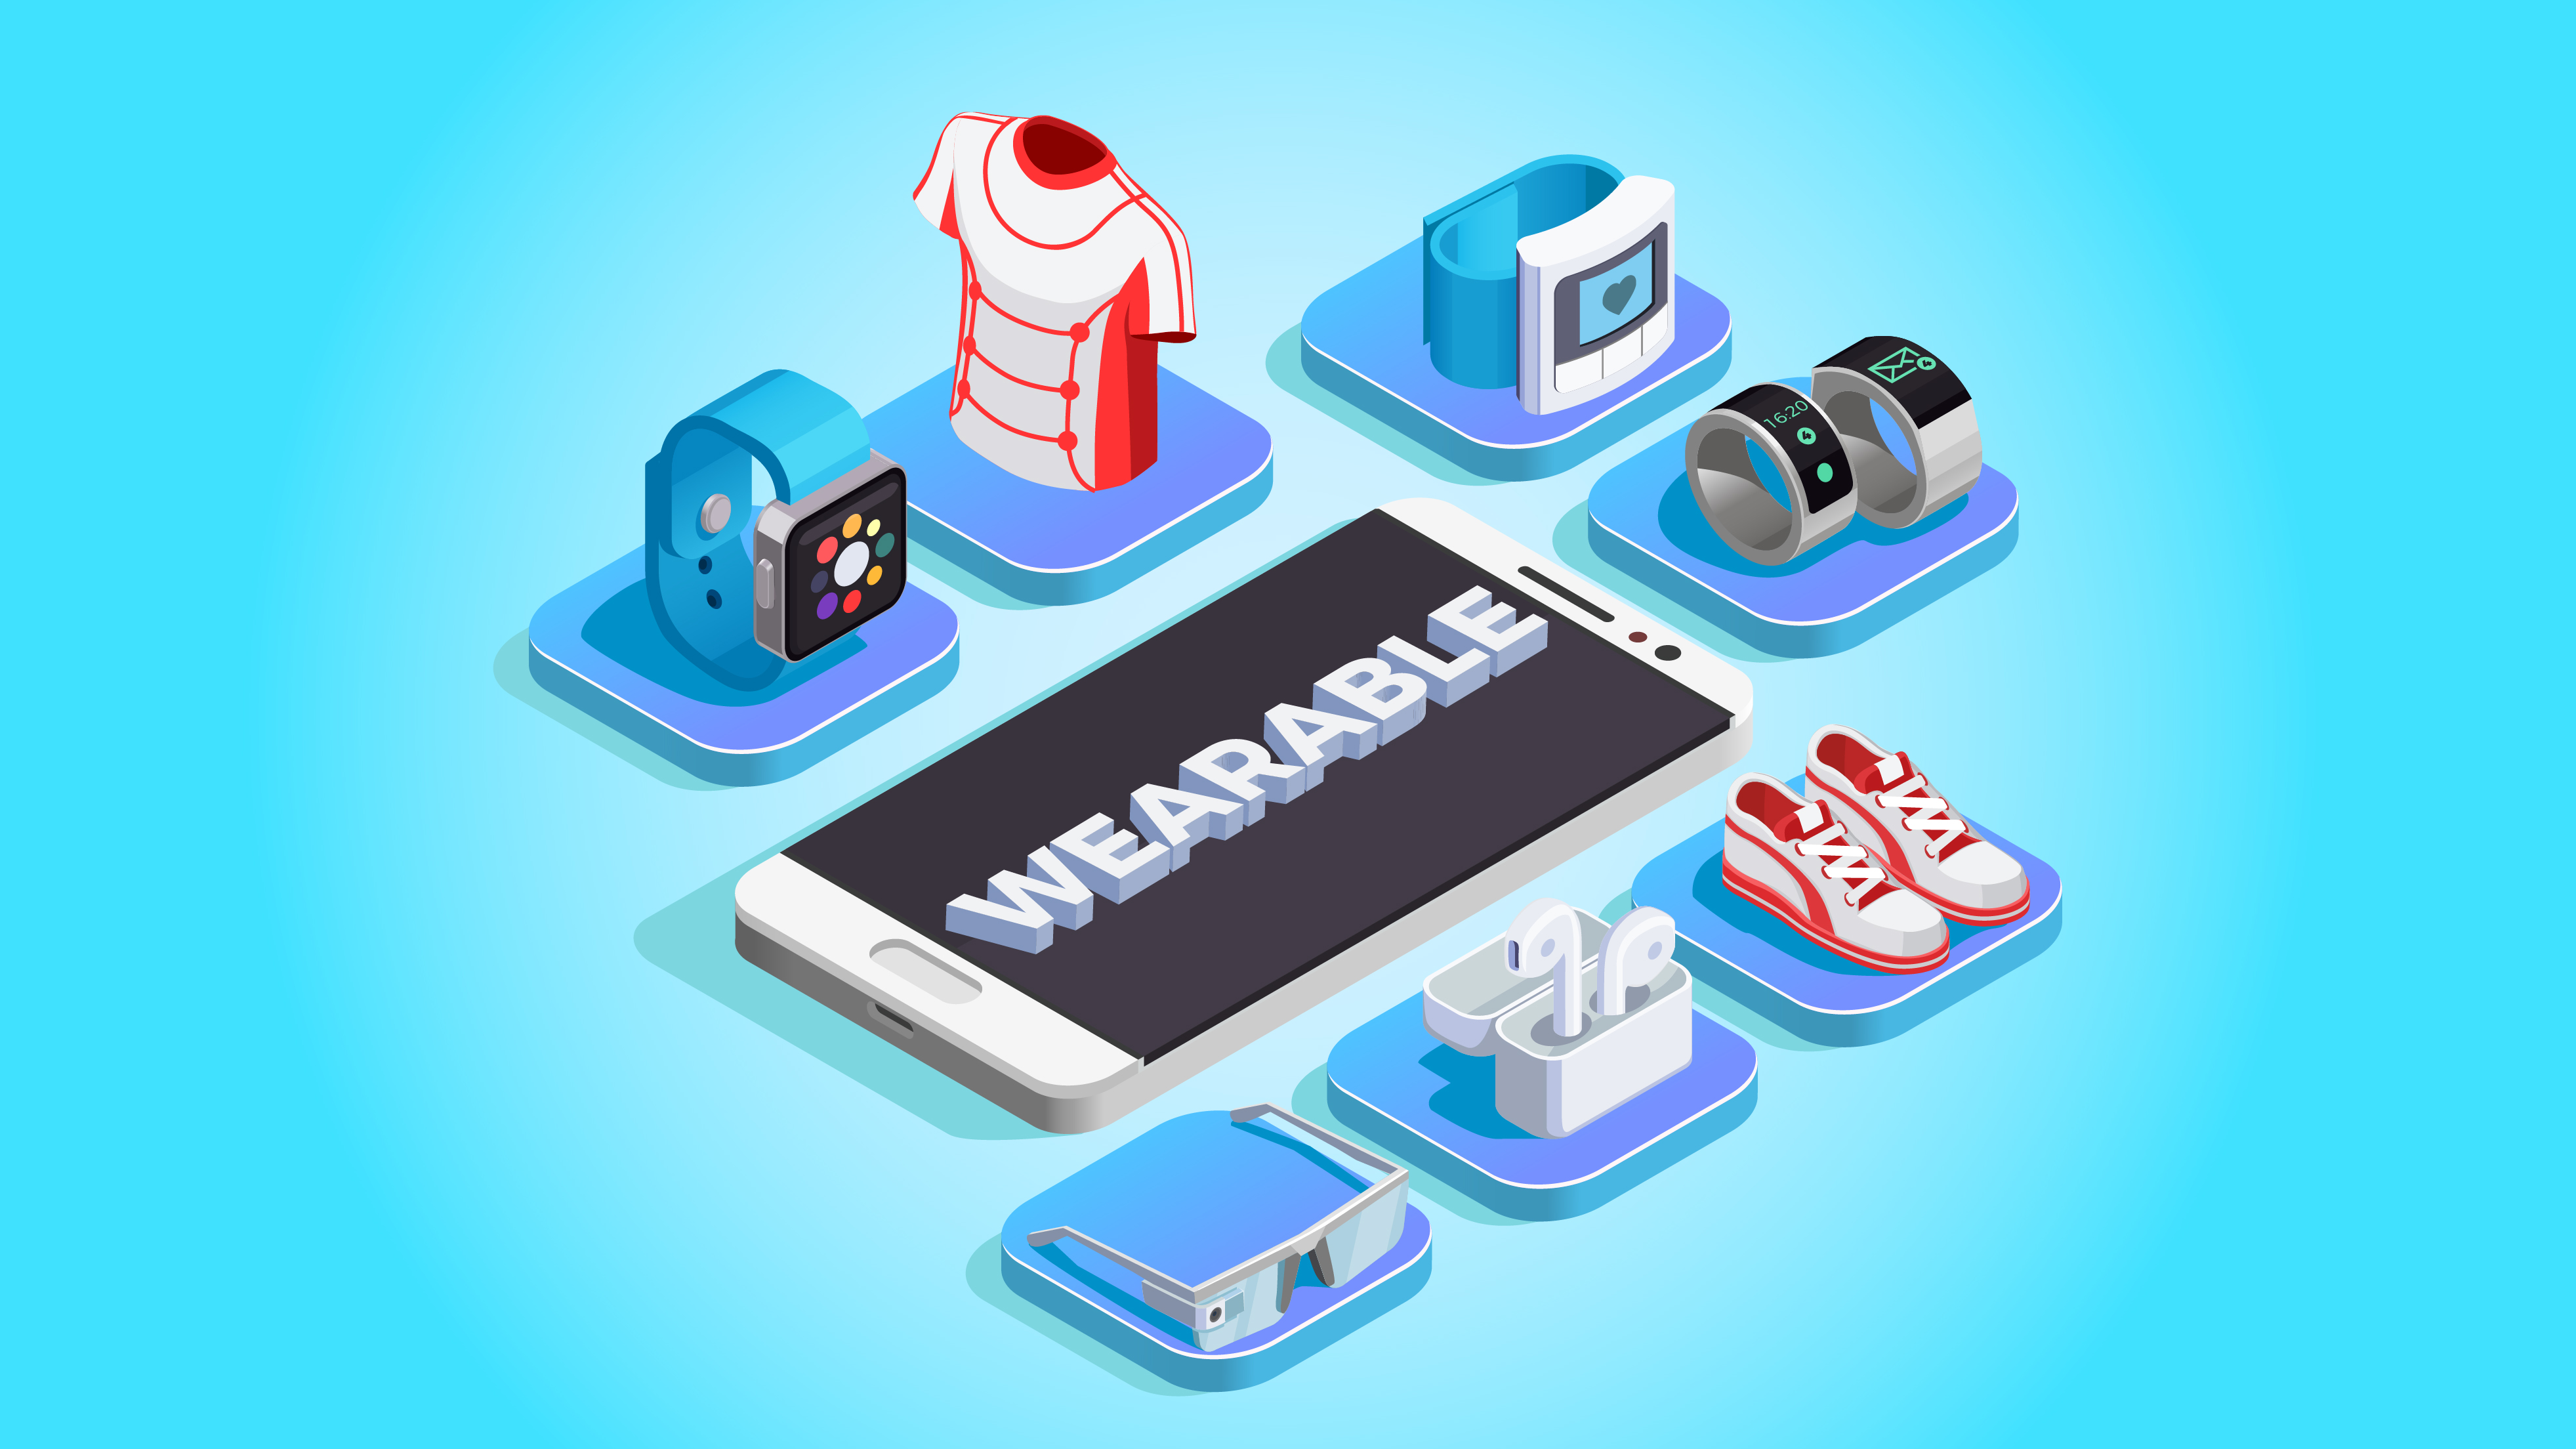 Wearable becoming part to daily life